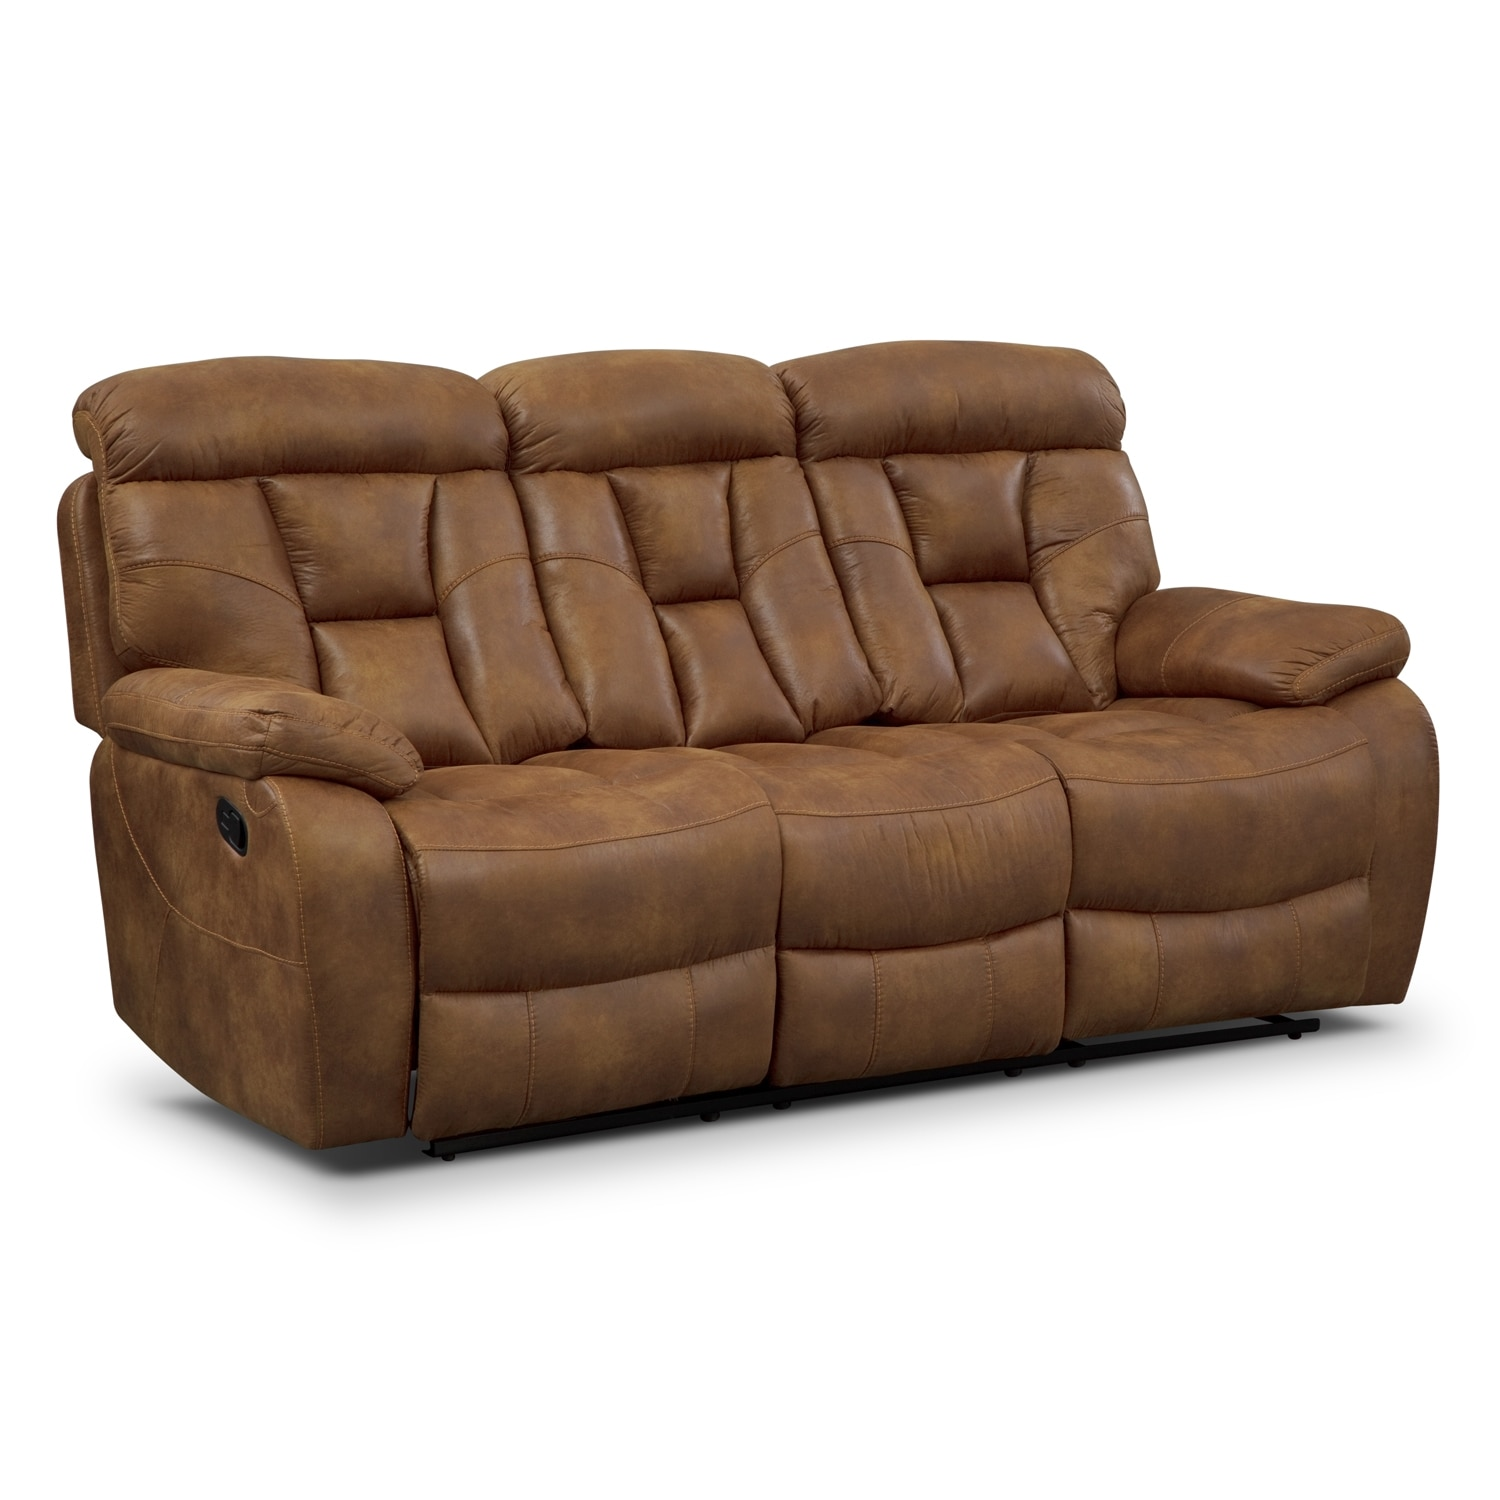 Dakota Reclining Sofa - Almond